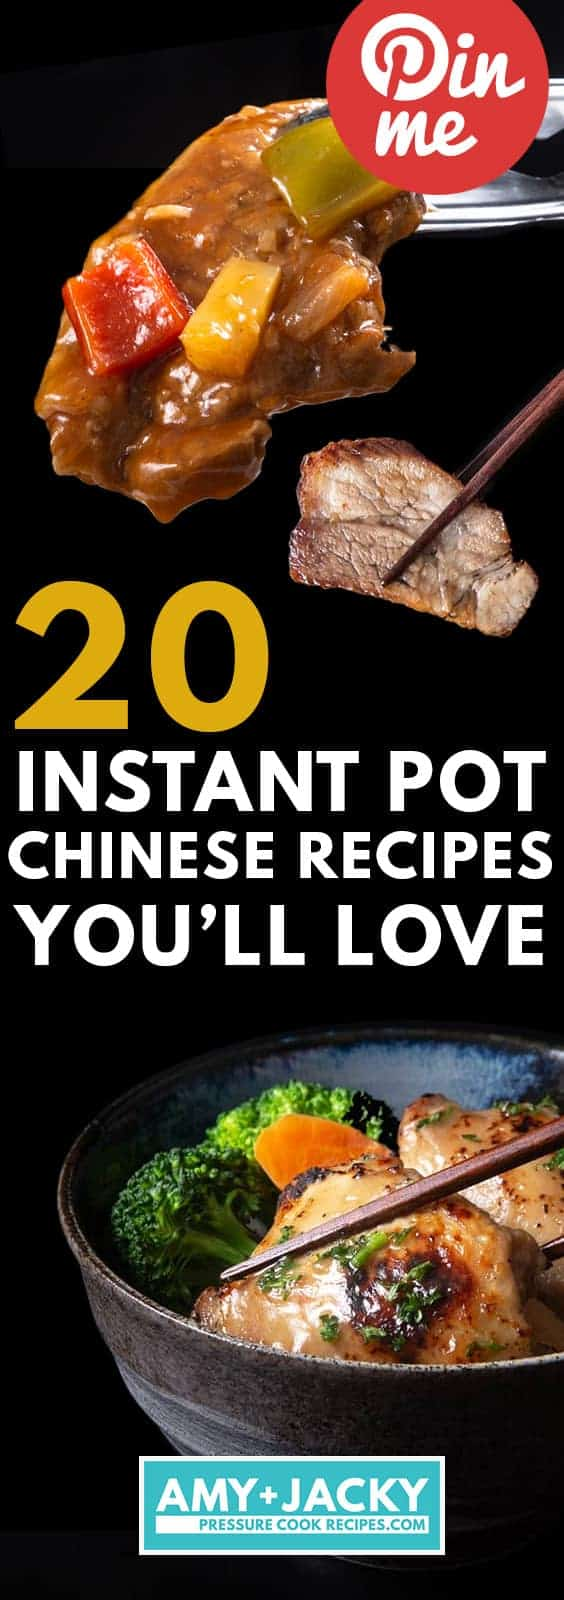 Instant Pot Chinese Takeout Recipes | Instant Pot Chinese Recipes | Instapot Chinese Recipes | Pressure Cooker Chinese Recipes | Chinese Takeaway | Chinese Food #instantpot #pressurecooker #chinese #recipes #easy #healthy